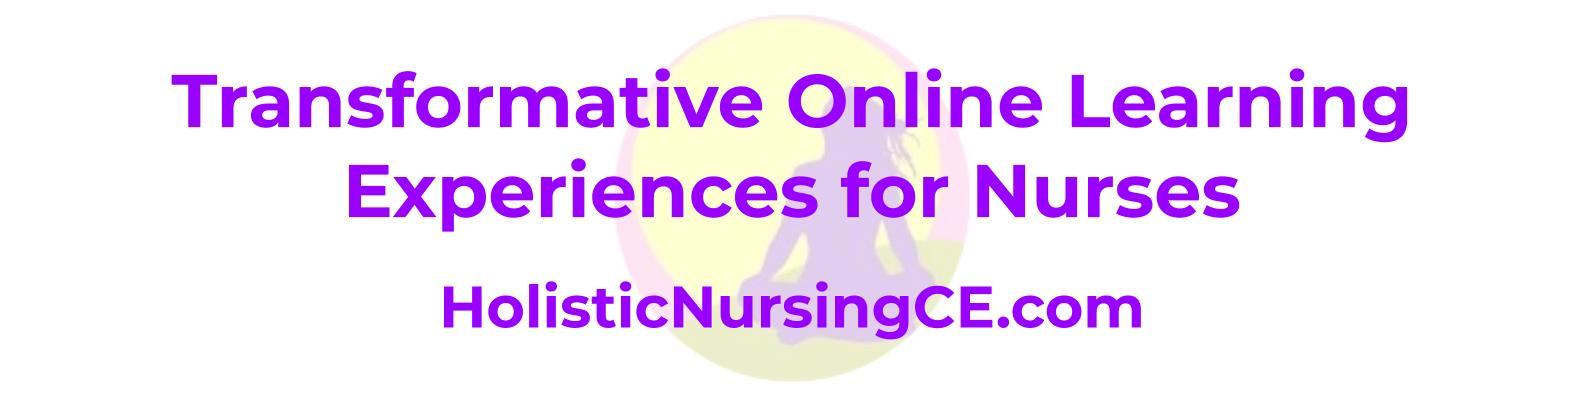 Transformative Online Learning Experiences for Holistic Nurses